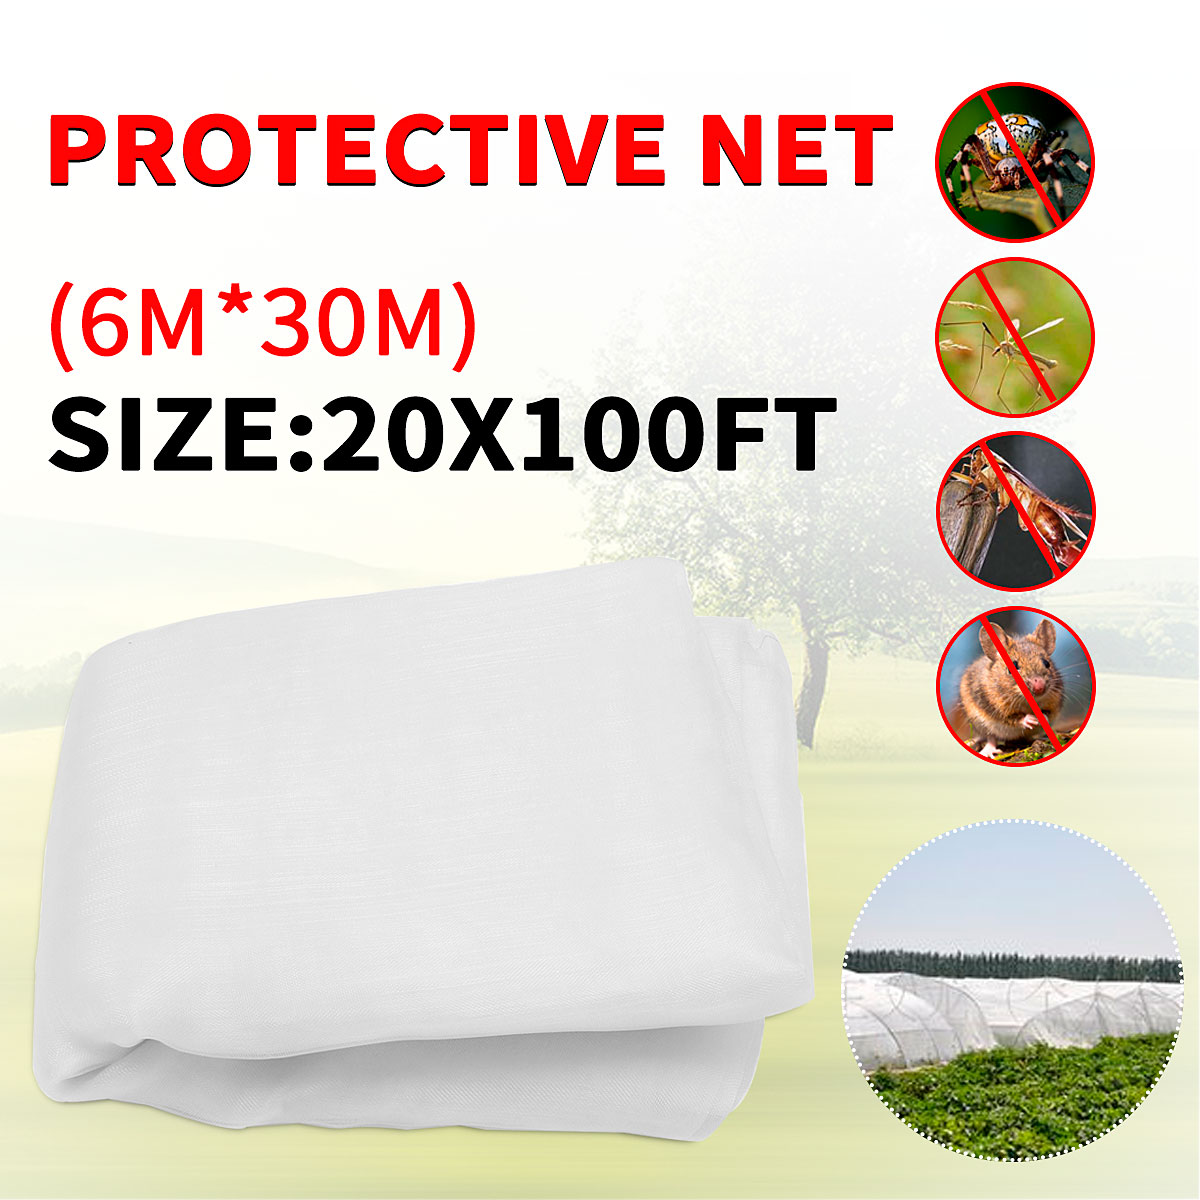 6x30m Anti Insect Bird Net Sunshade Netting Protect Orchard Garden Farm Fruit Plant Crops Vegetable Flower Mesh Multipurpose